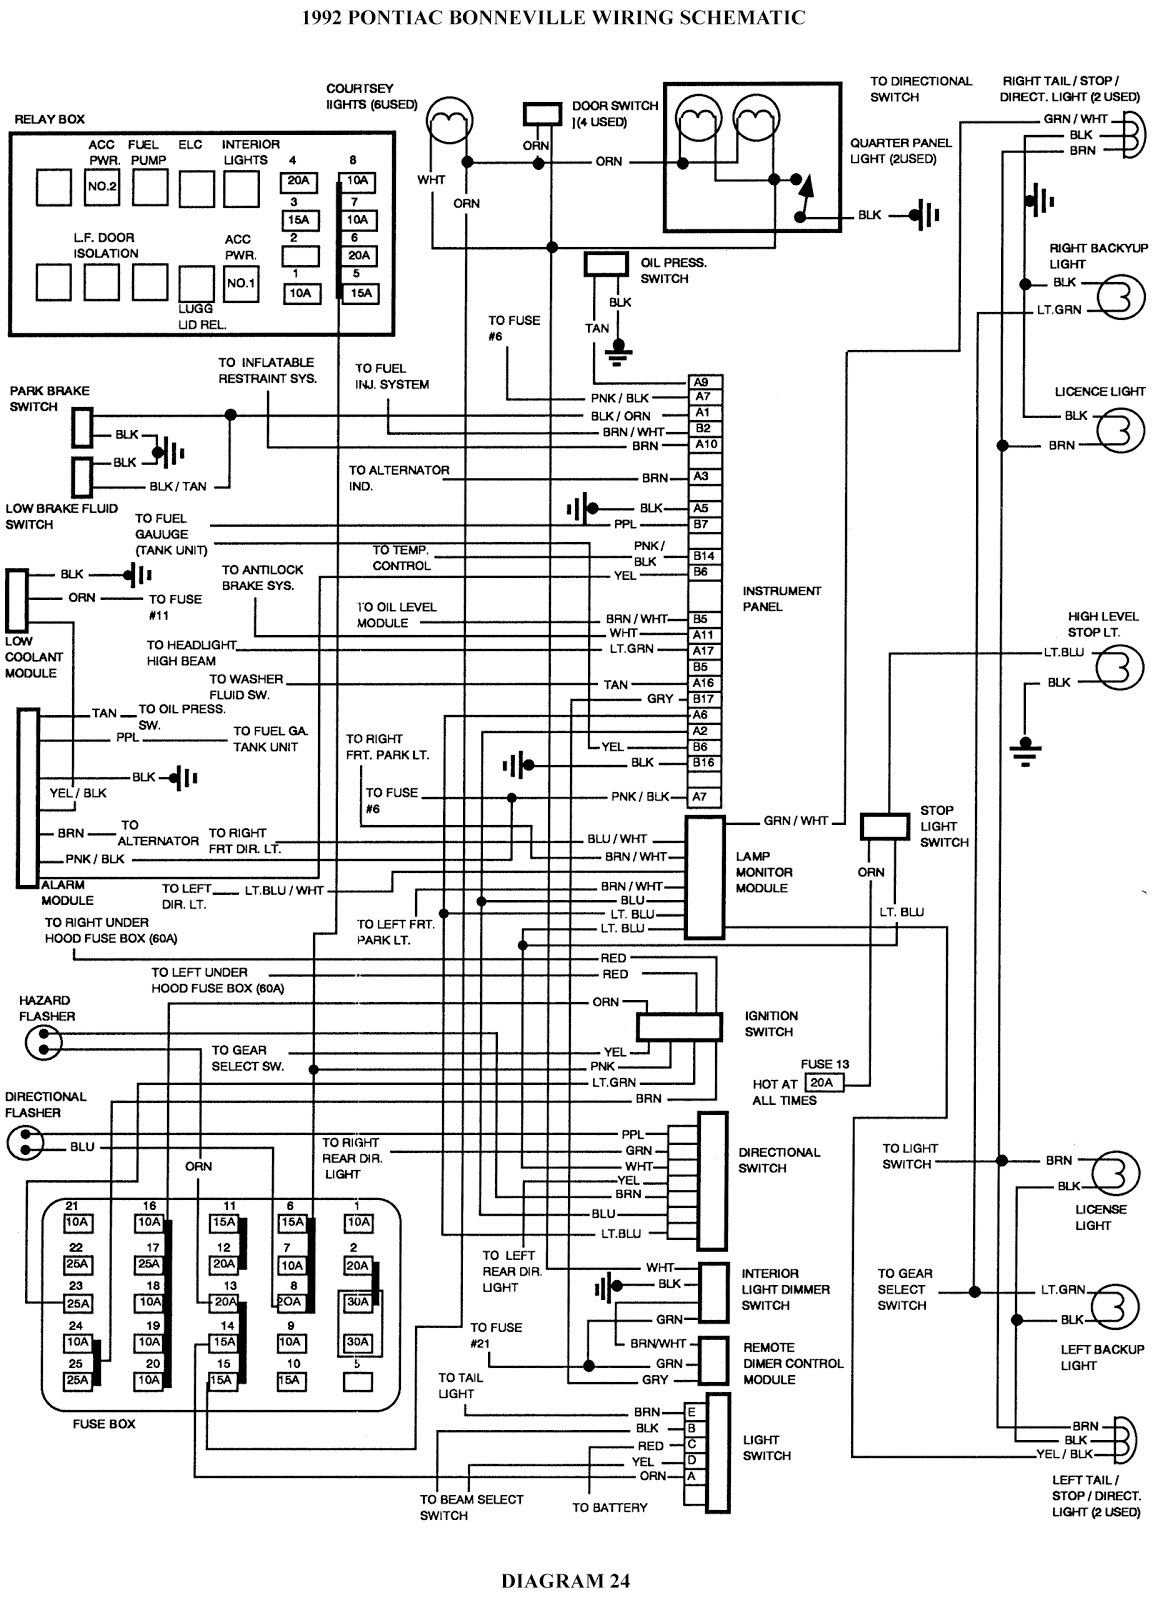 98 Pontiac Bonneville Wiring Diagram Third Level 2004 Fuse Box 2000 Schematic 2003 Grand Prix